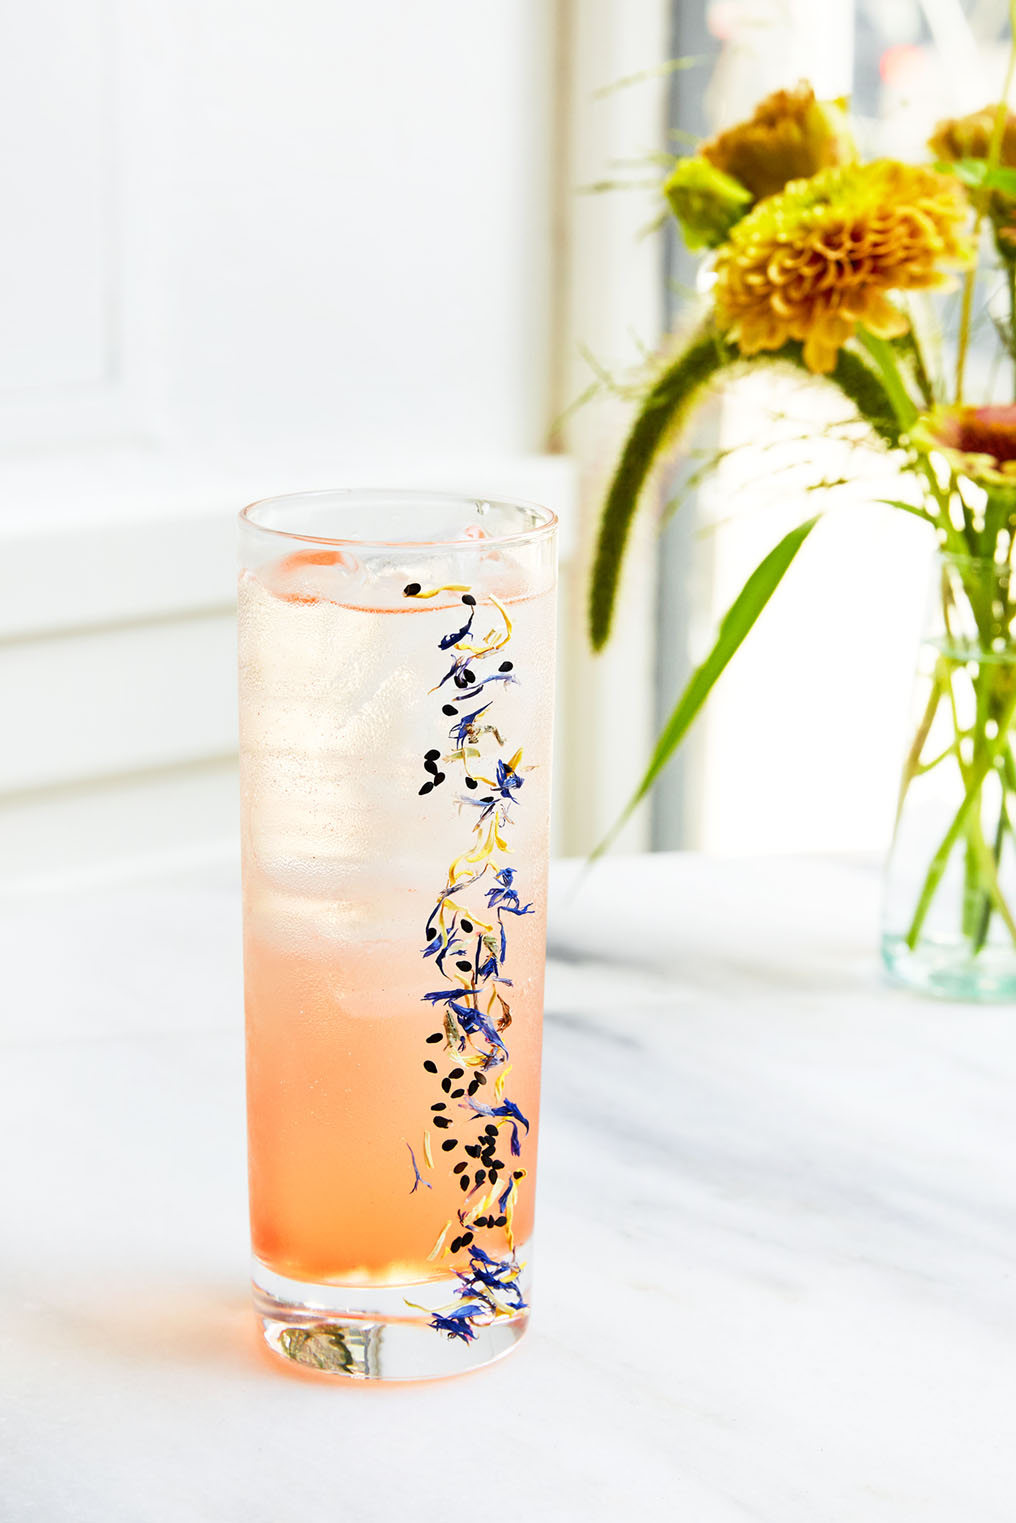 botanical-infused cocktail at Il Florista